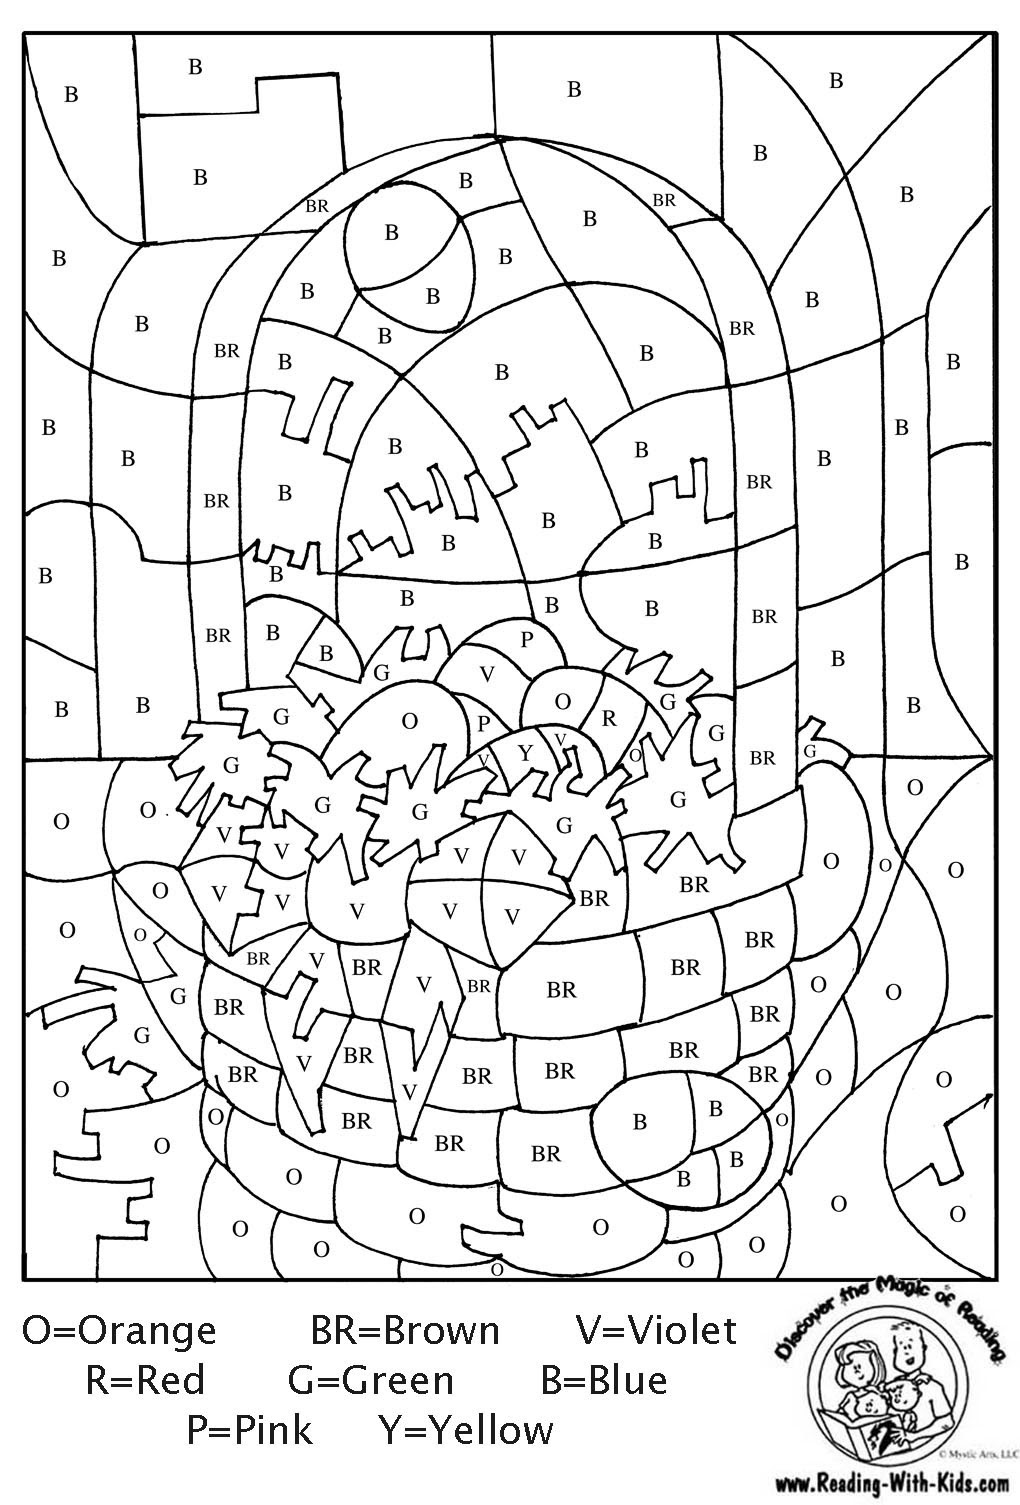 7 Best Images of Maze Worksheets For Teens - Christmas ...